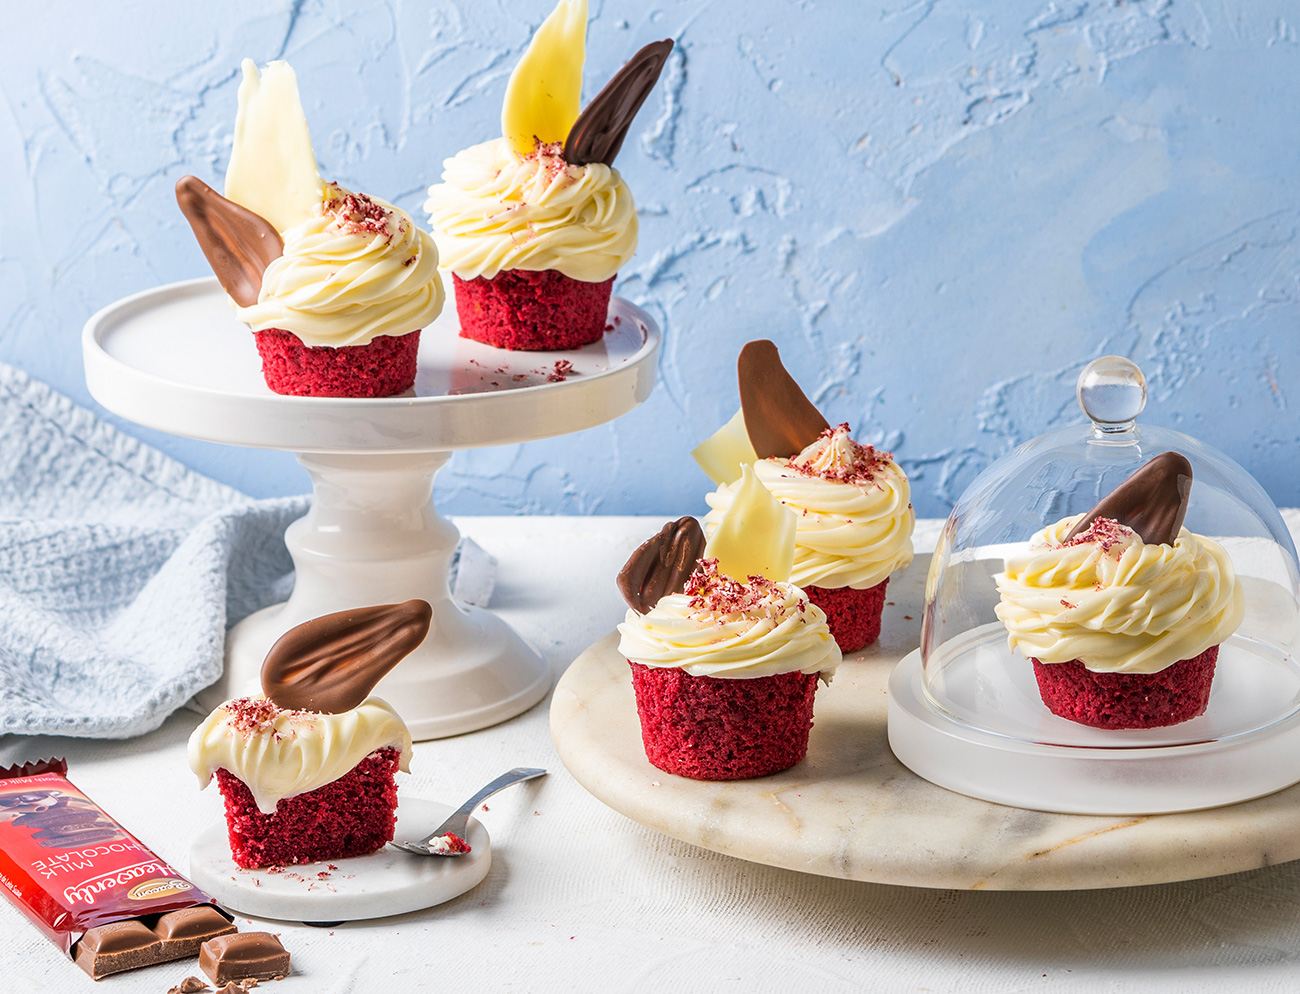 beacon-recipe-red-velvet-cupcakes-01